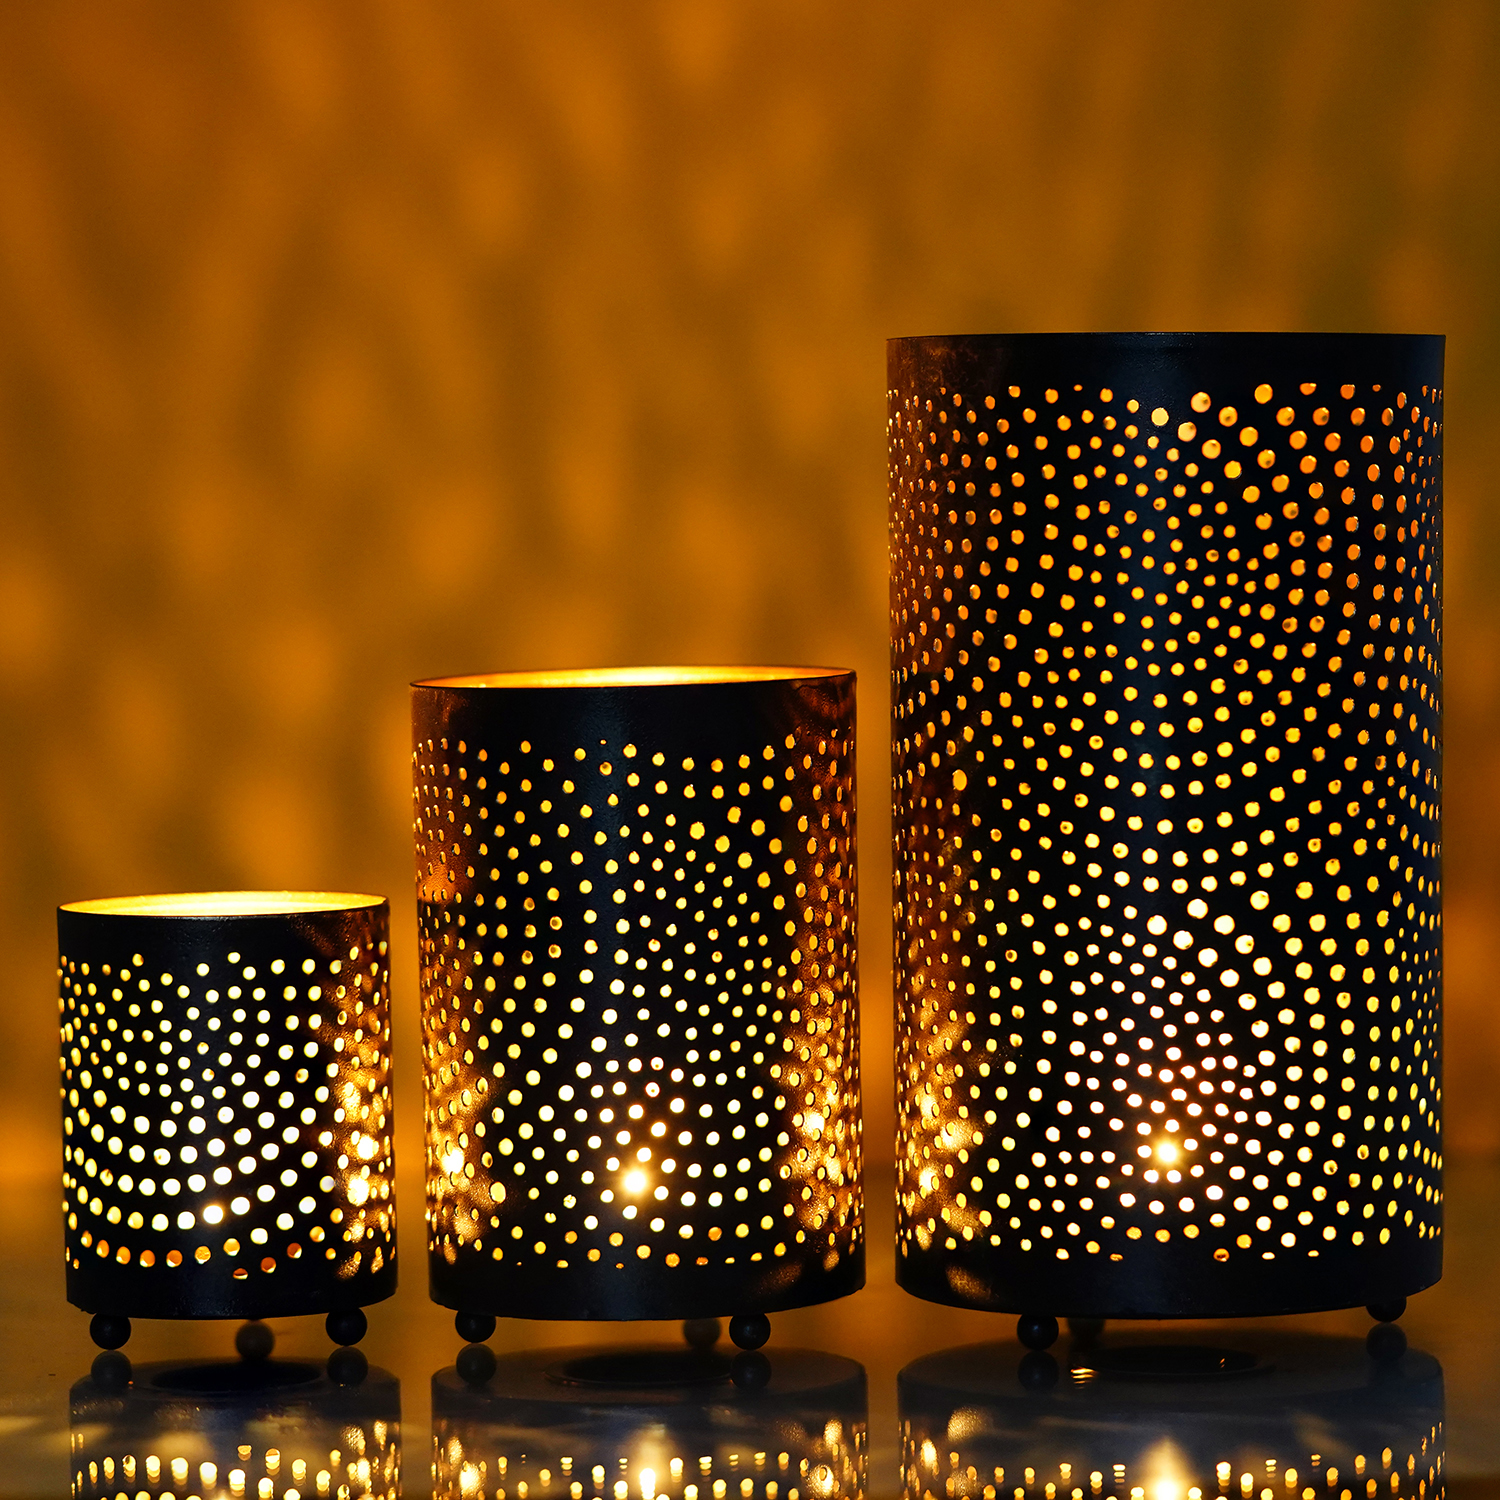 Set of 3 Decorative Mesh Design Iron Tea Light Holder in Cylindrical shape Indian Home Decor